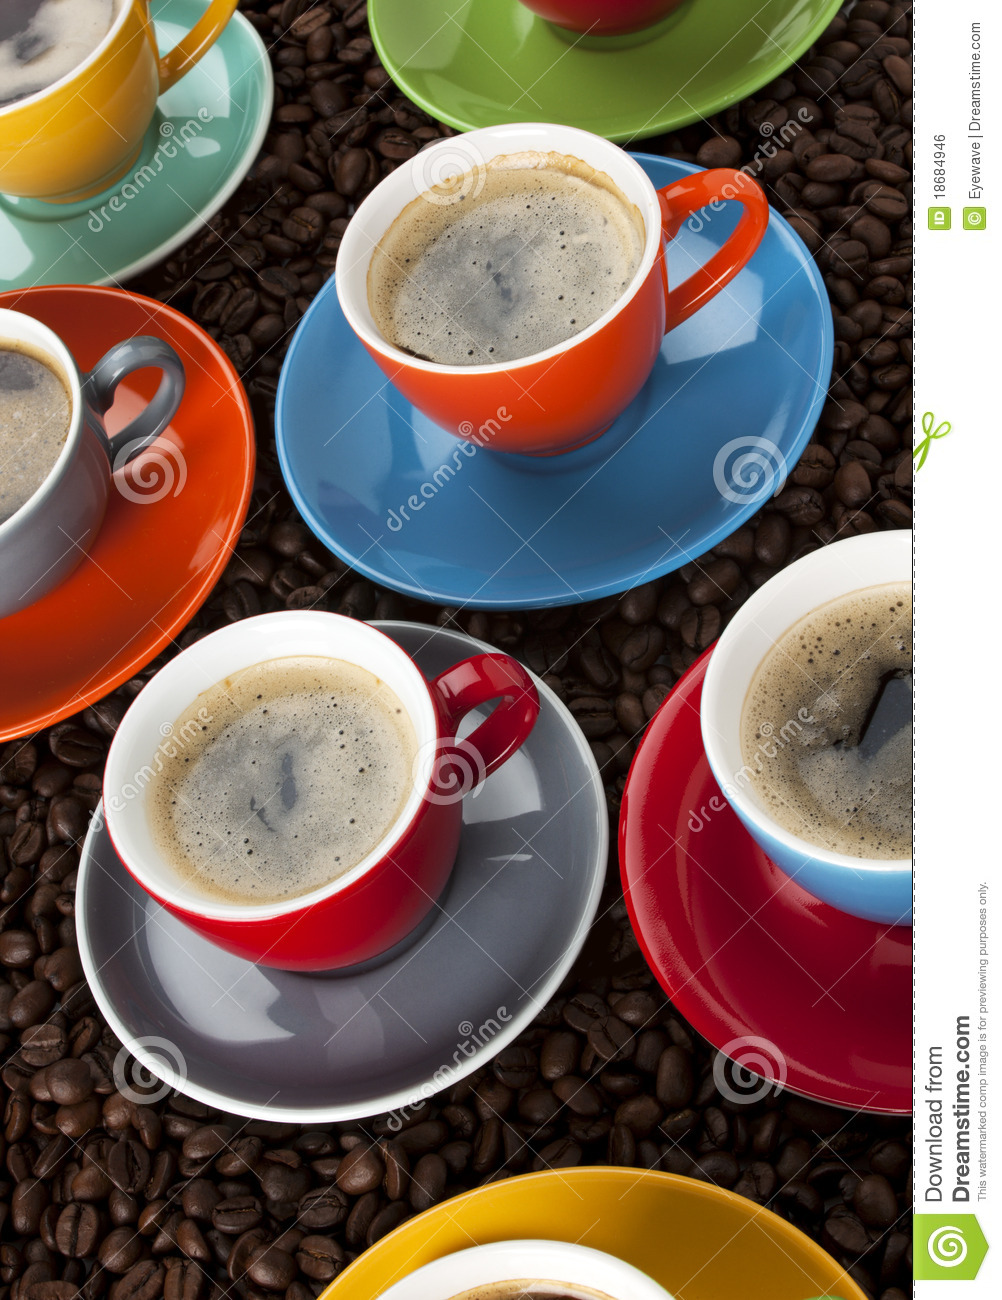 colorful espresso cups 18684946 Small Coffee Cups Colorful Coffee Cups Royalty Free Stock Photo Image